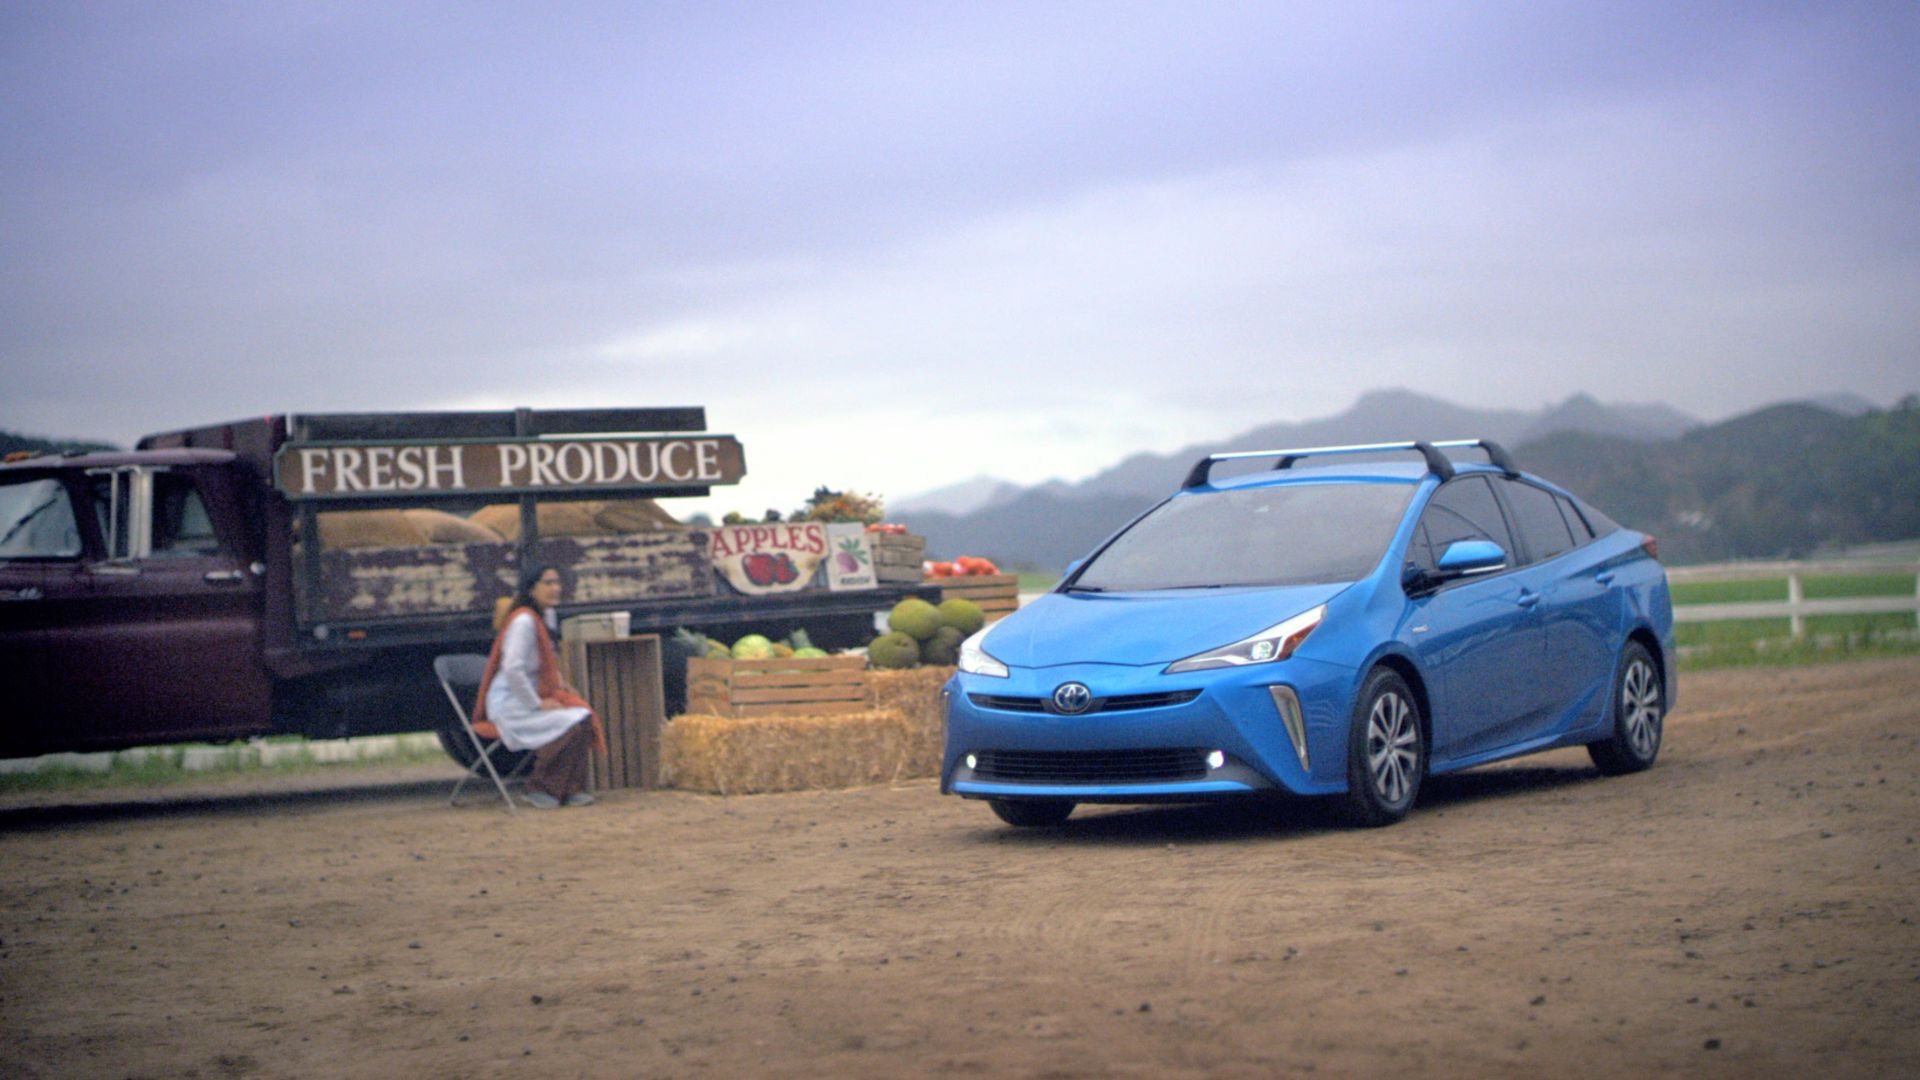 What Is the Average Lifespan of a Toyota Prius Battery?